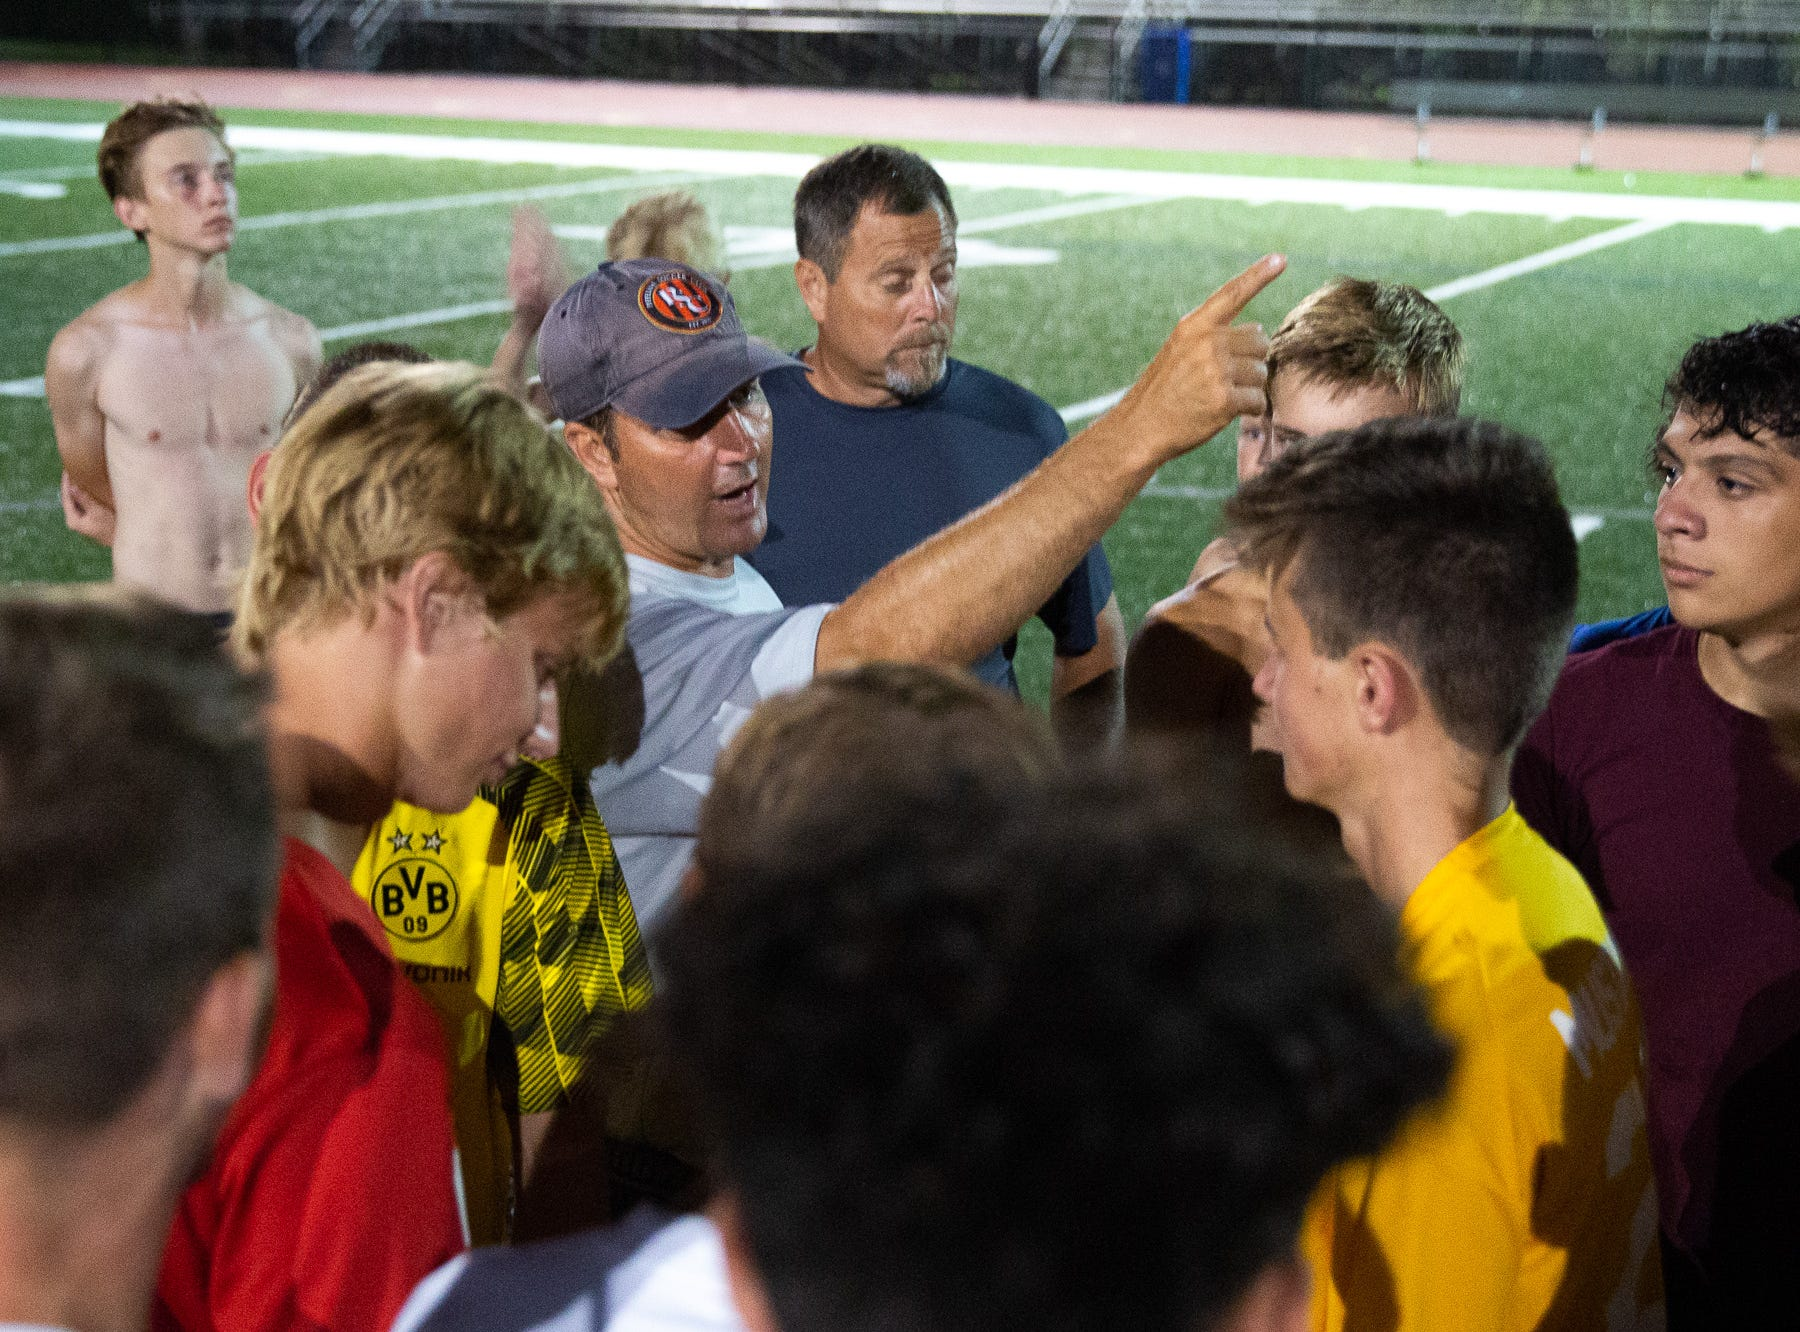 South Western boys soccer head coach Slater speaks to his team after practice on the first day of fall sports practice, Monday, Aug. 13, 2018, at South Western High School.